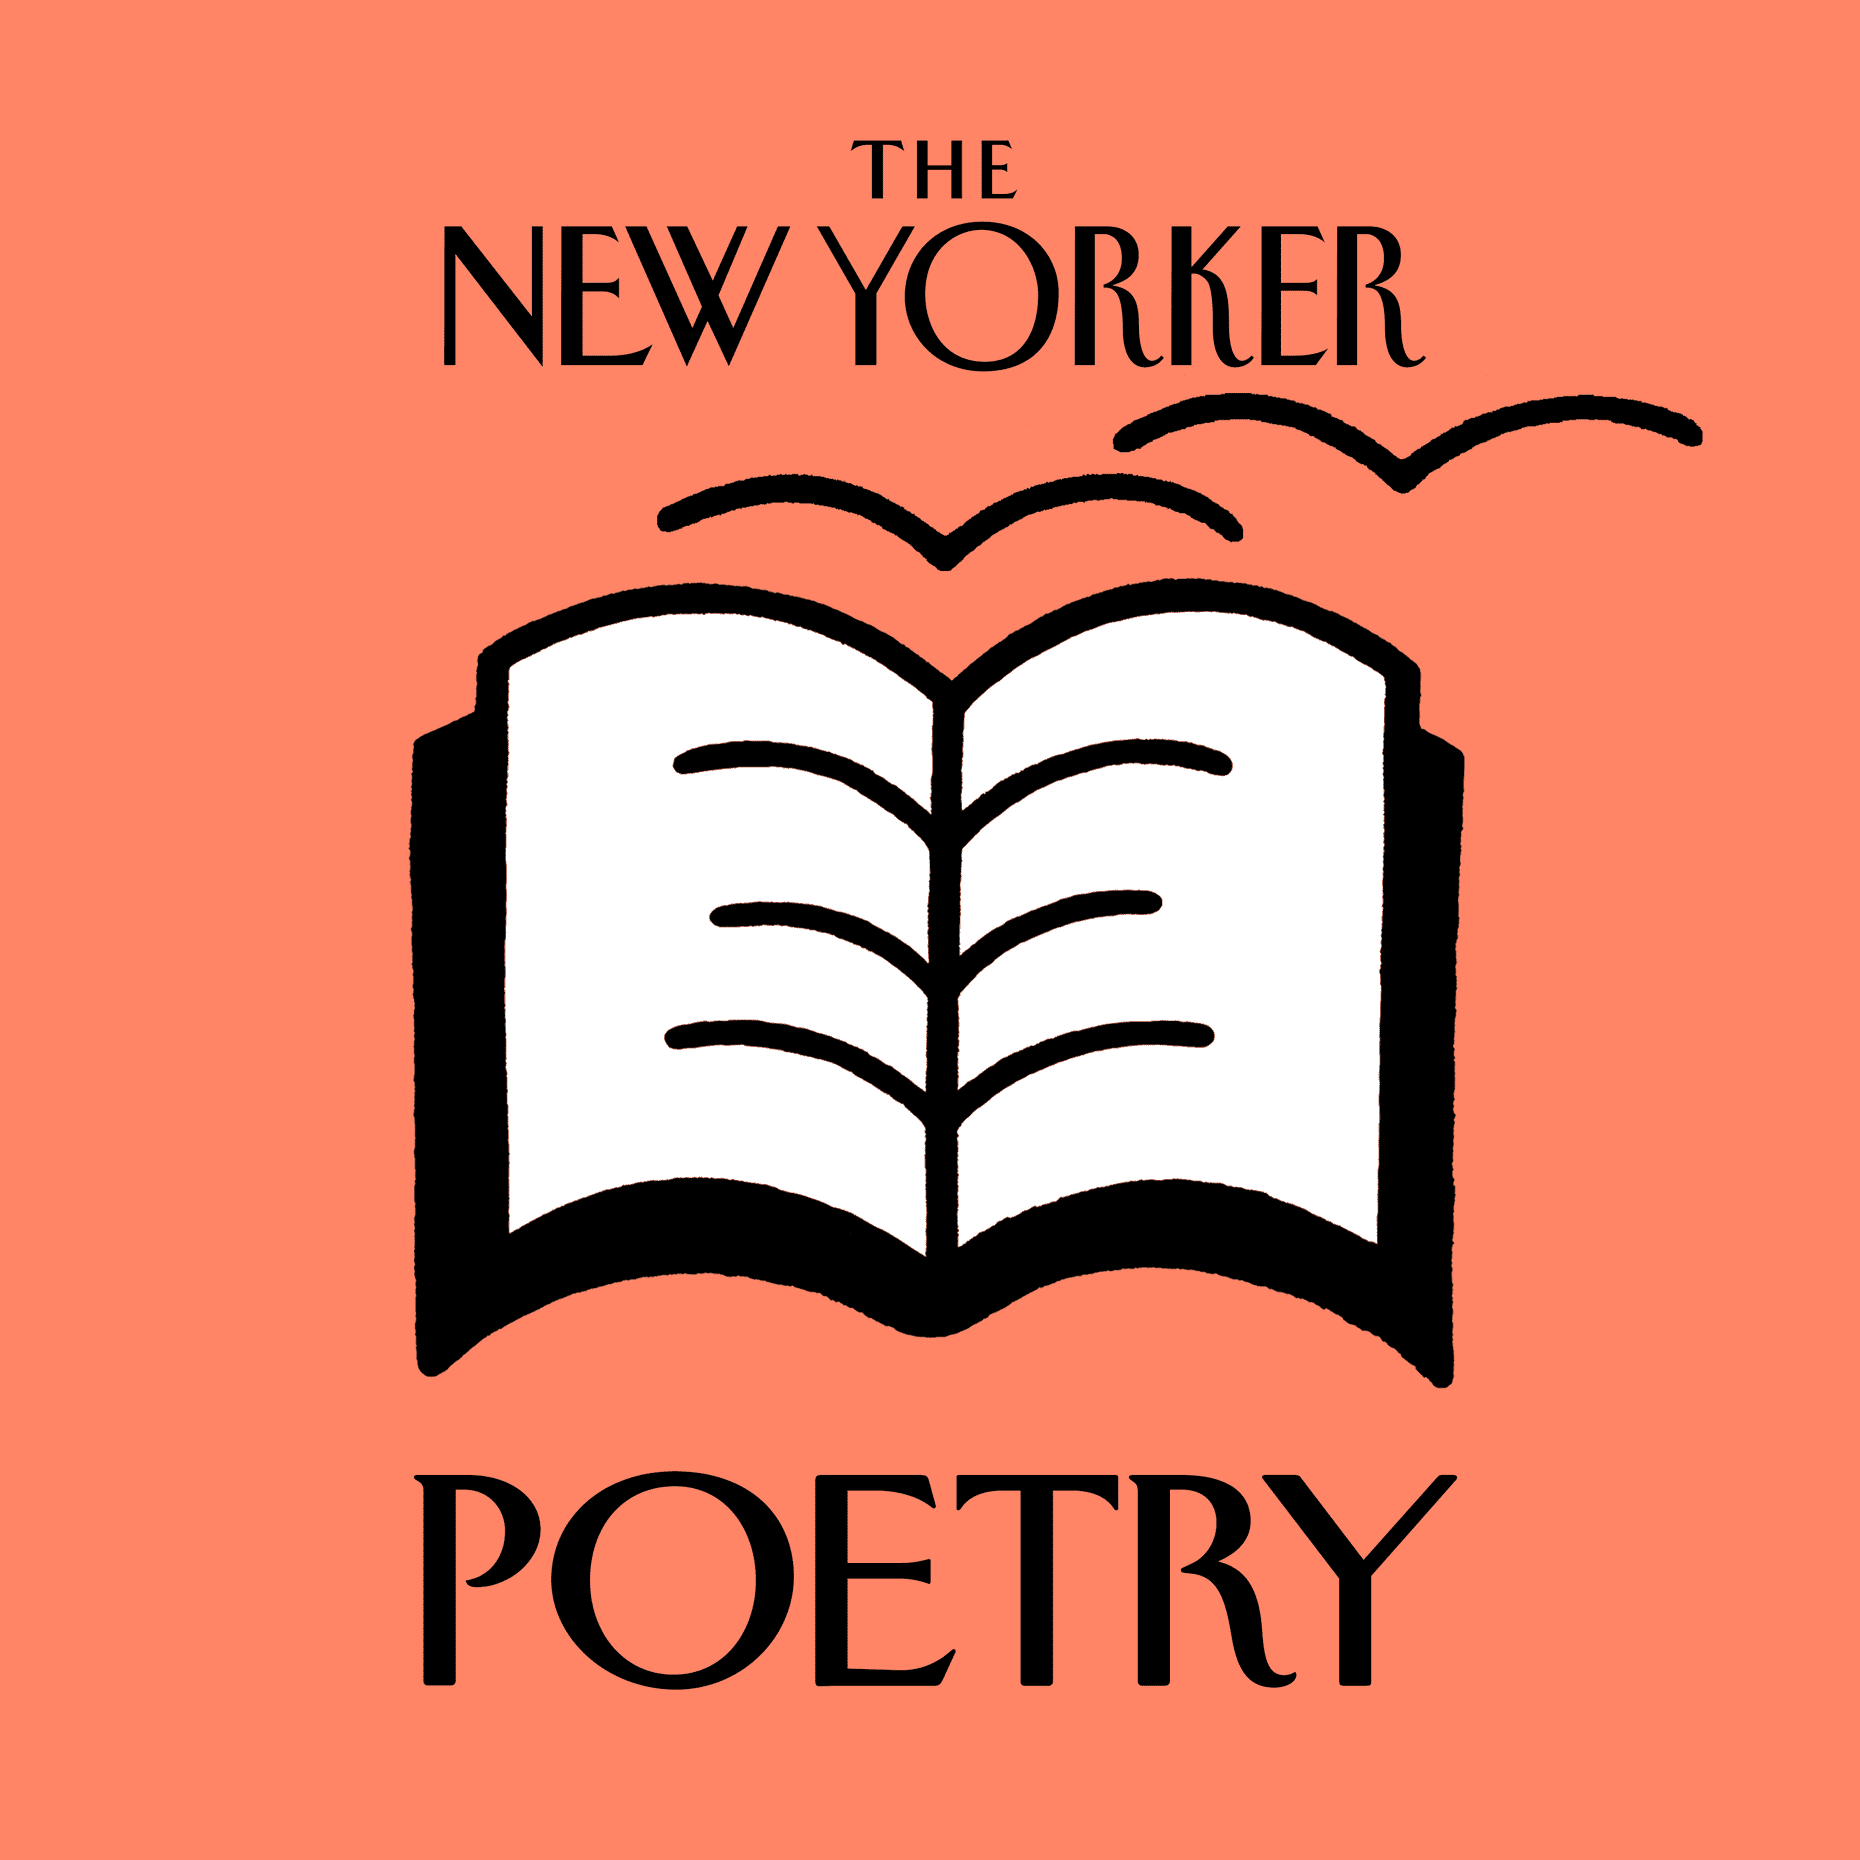 The New Yorker: Poetry